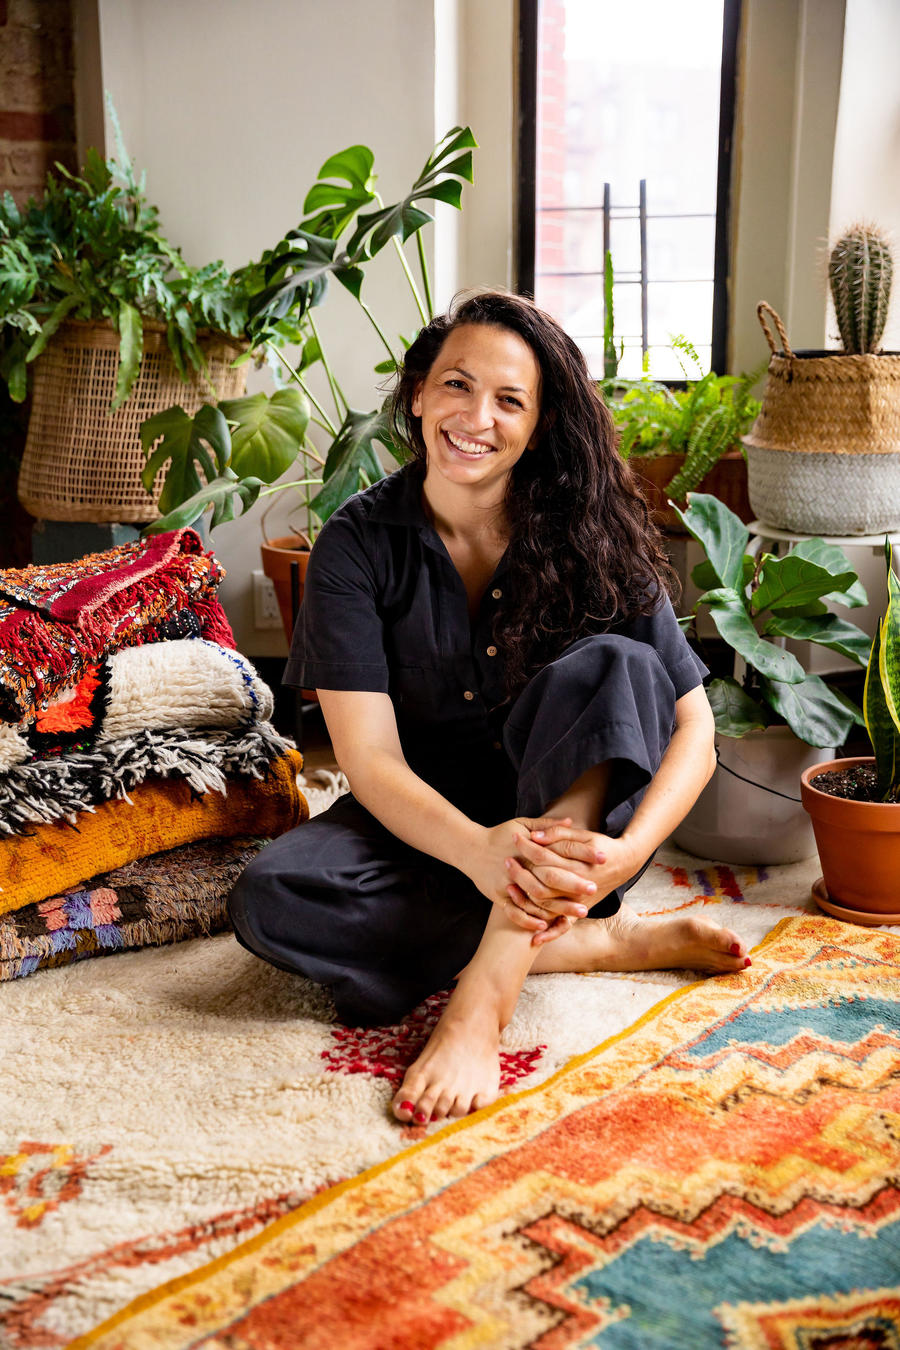 Handwoven Moroccan rugs, direct from the women who make them